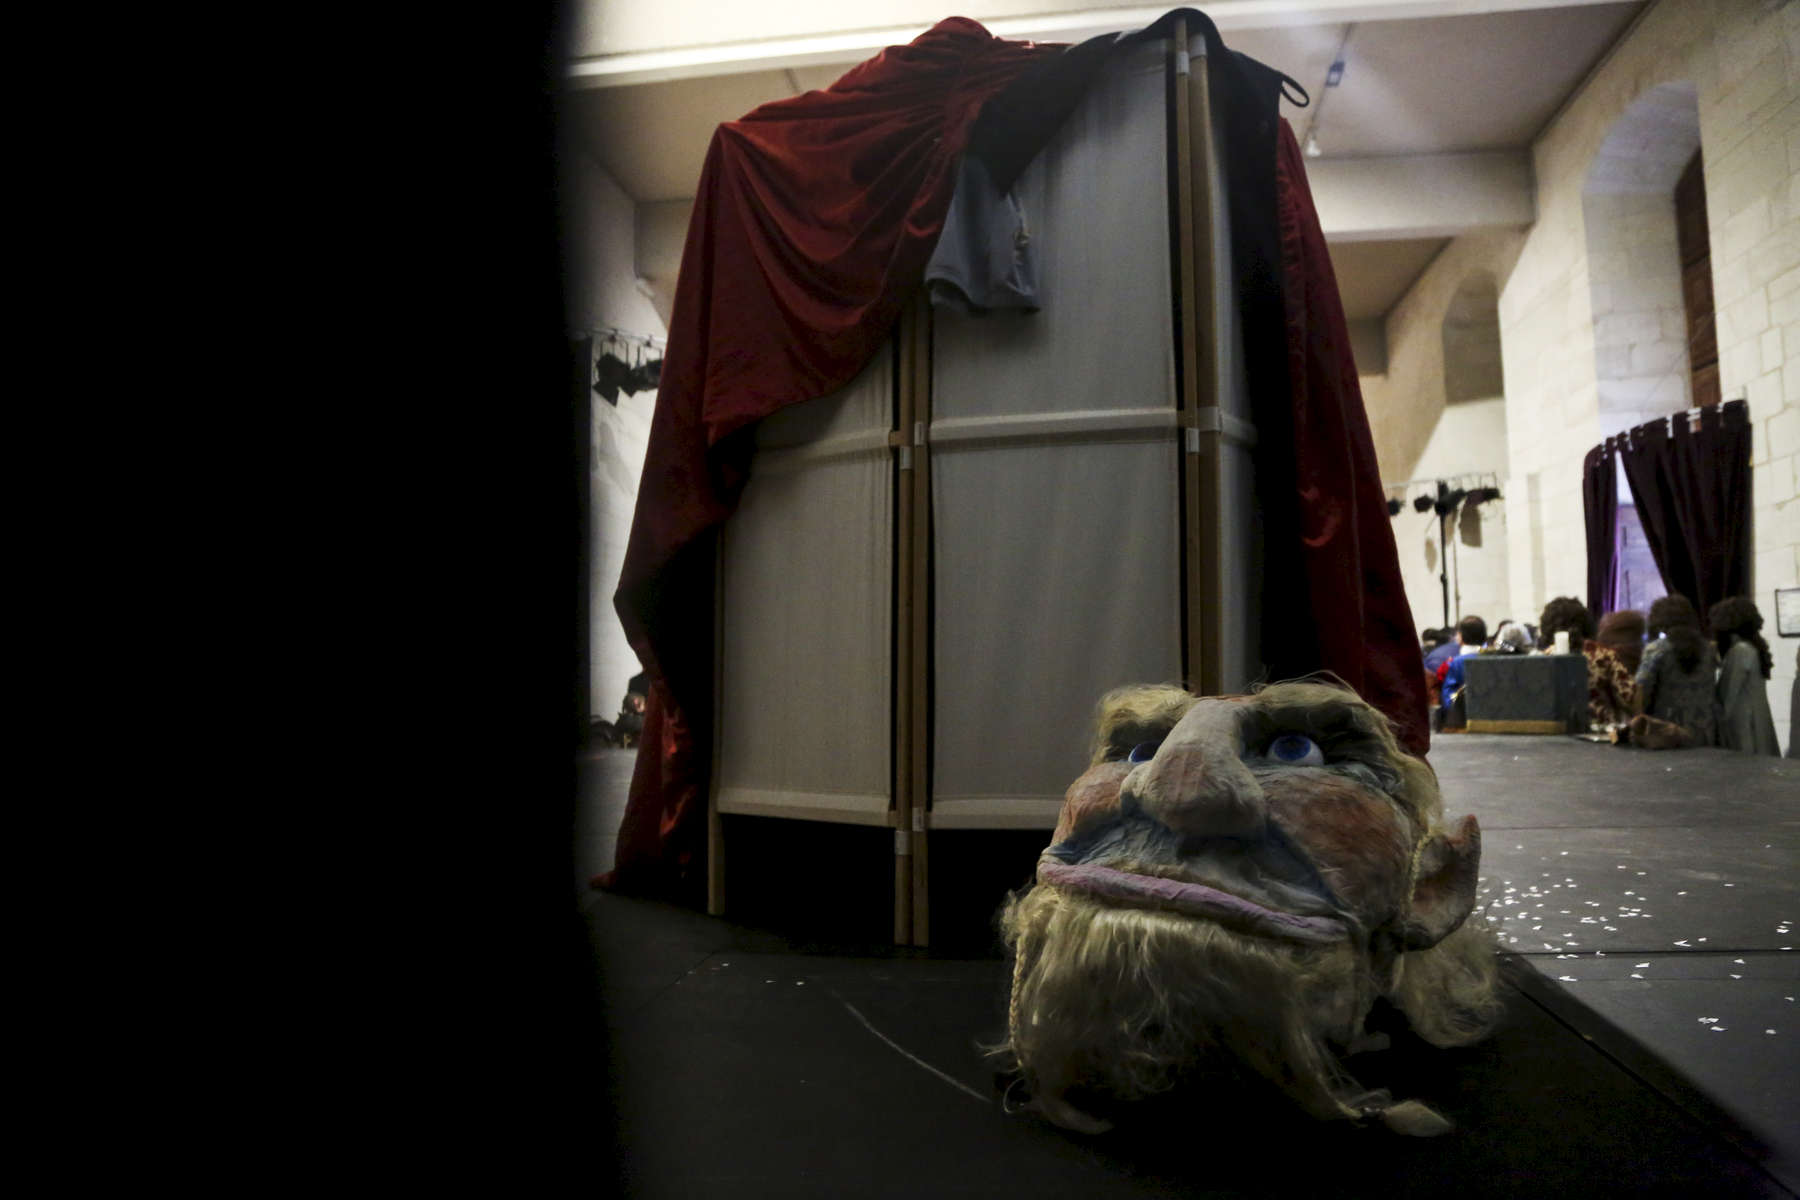 The head of the ogre backstage at the end of the performance.